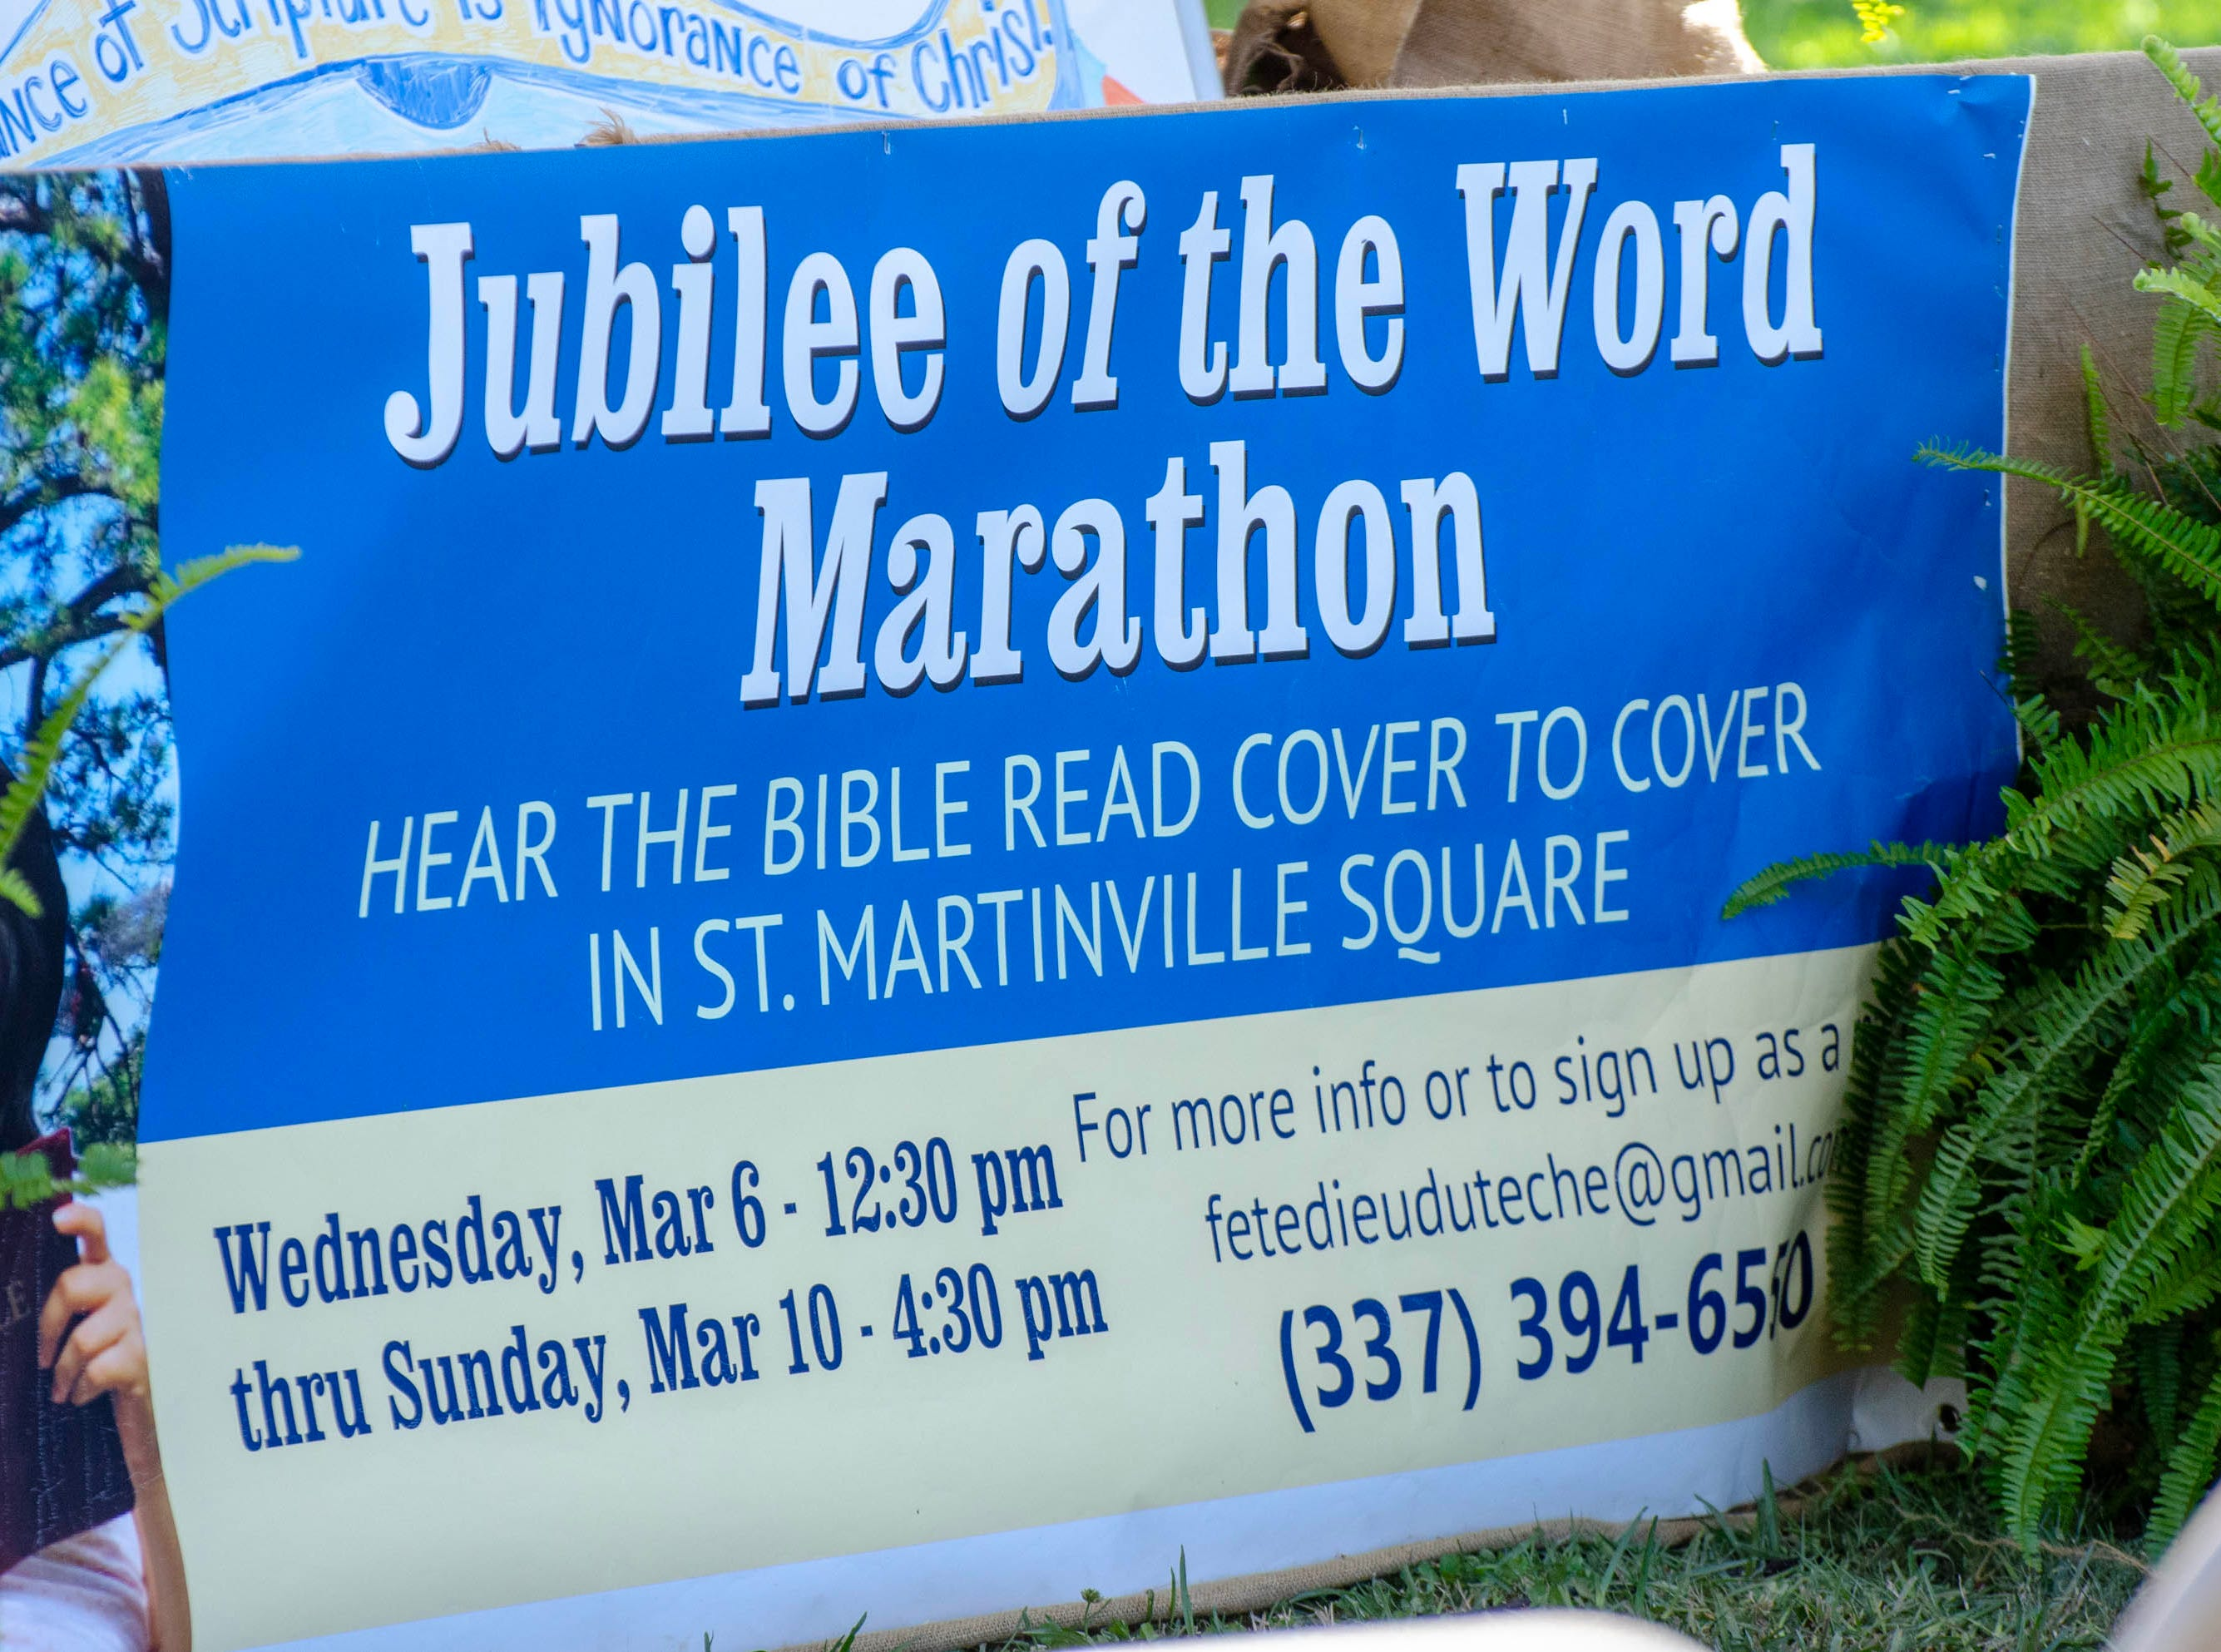 Diocese of Lafayette Annual Jubilee of the Word Marathon.